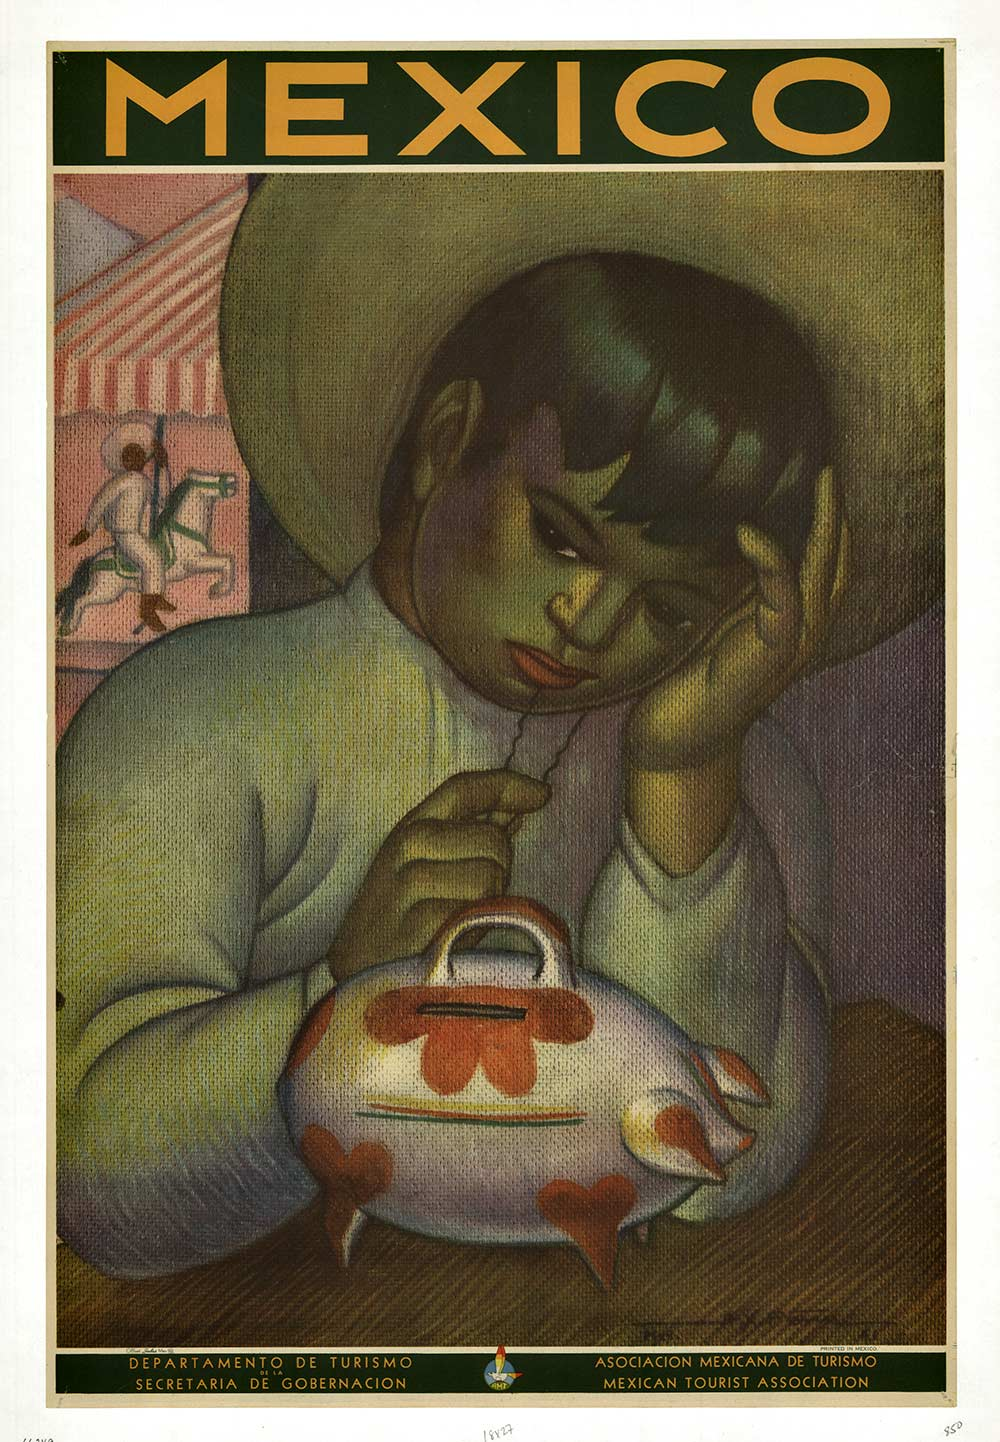 Mexico (Boy) w. Piggy bank, A. X. Pena